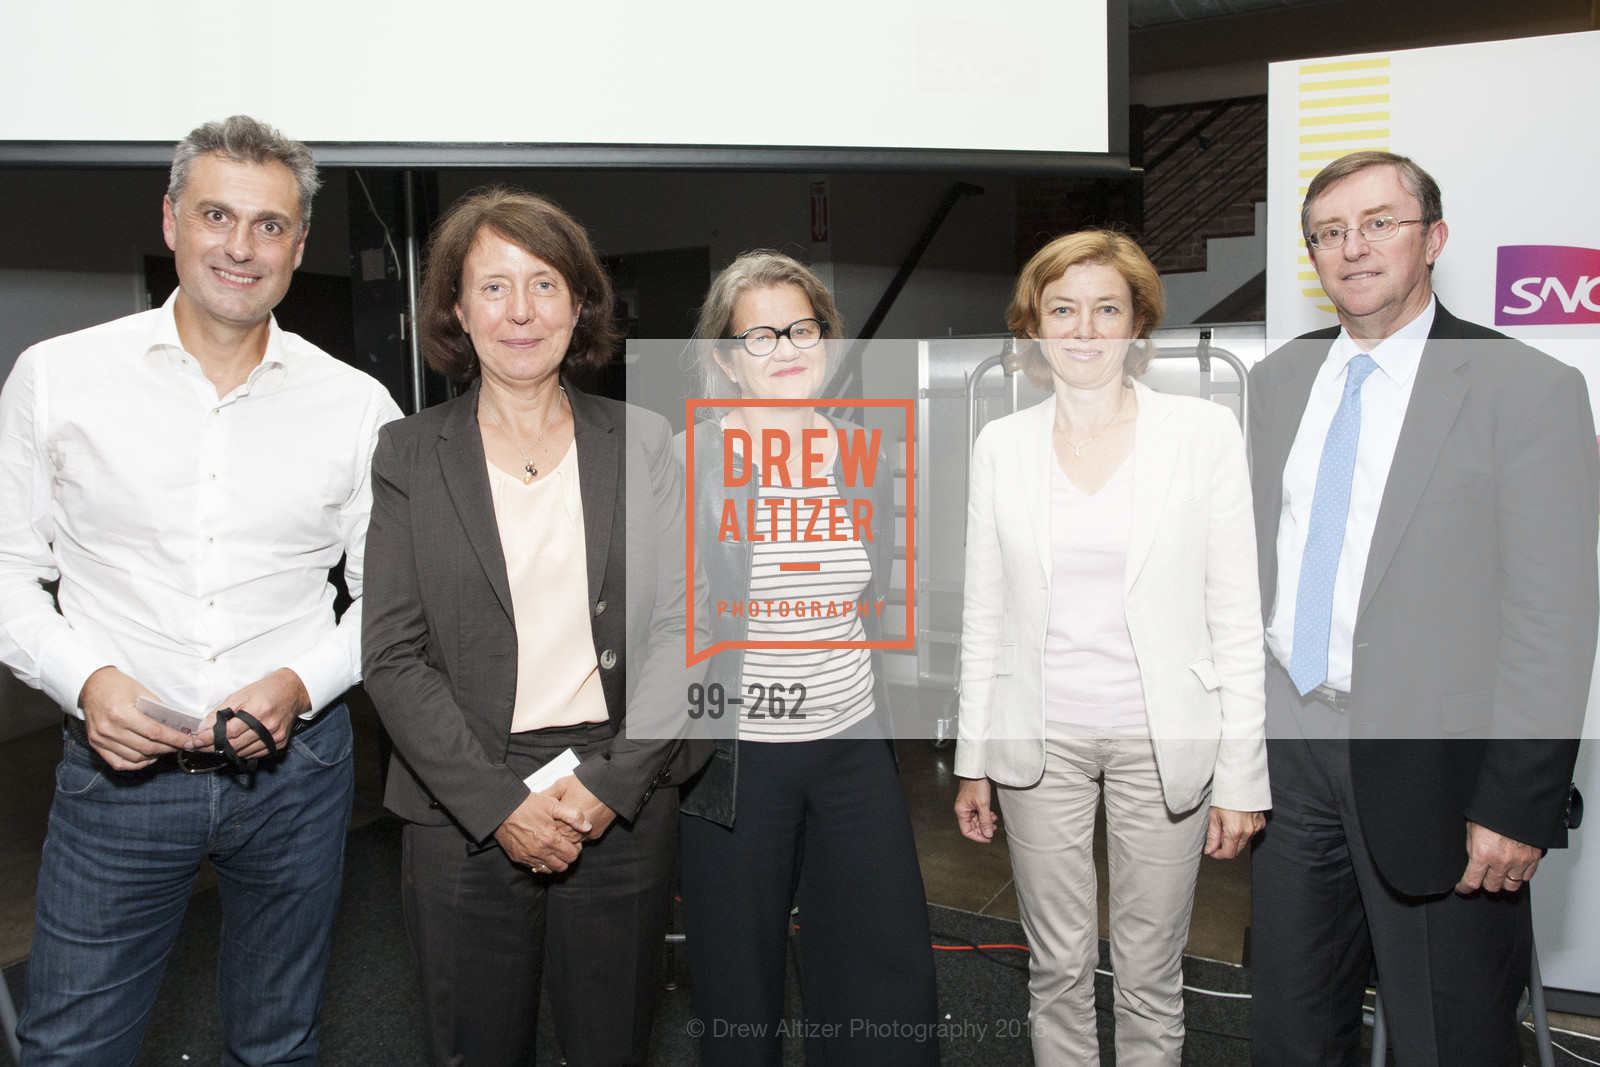 Yves Tyrode, Barbara Dalibard, Benedicte Tilloy, Florence Parly, Pierre Izard, Inauguration of SNCF Innovation Lab, 169 11th St, August 26th, 2015,Drew Altizer, Drew Altizer Photography, full-service event agency, private events, San Francisco photographer, photographer California